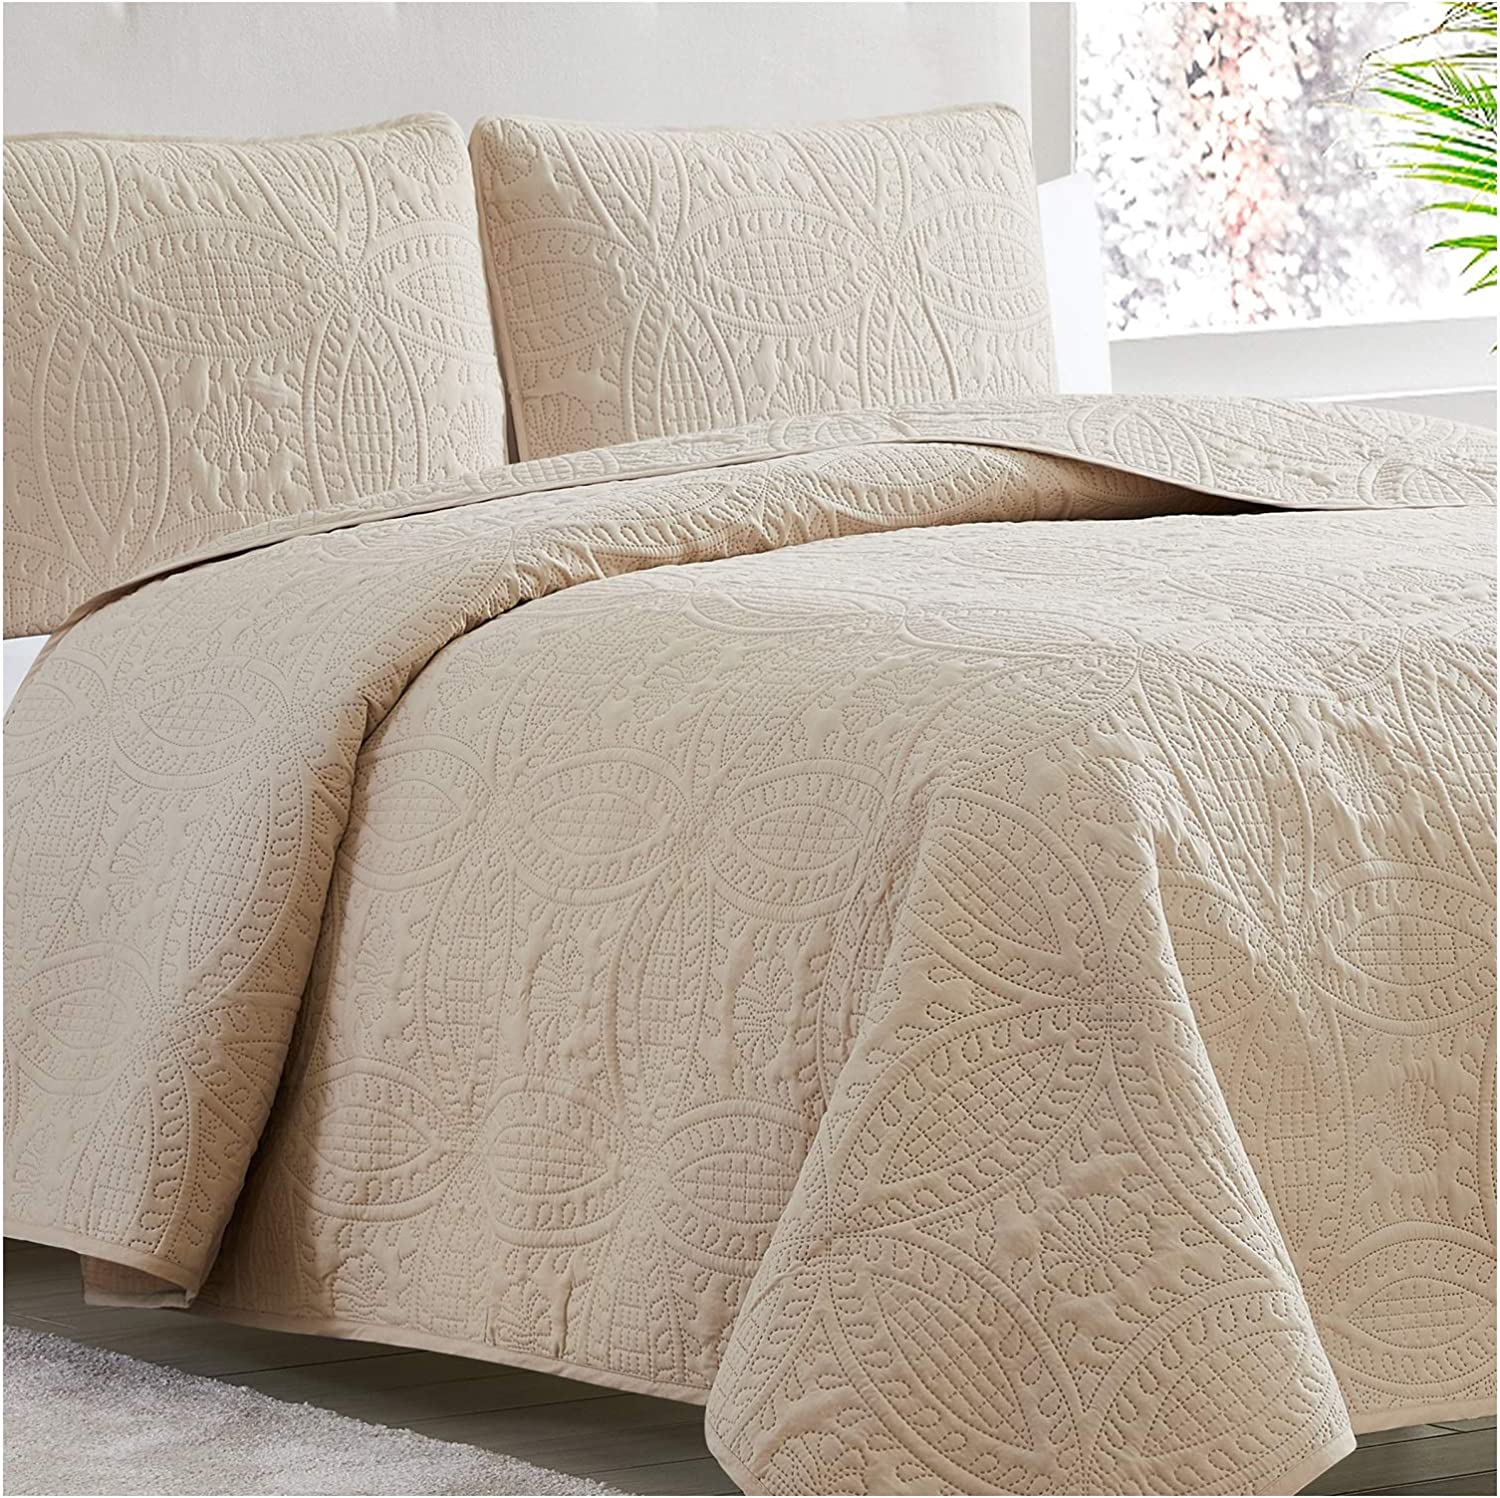 Mellanni Bedspread Coverlet Set Beige - Comforter Bedding Cover - Oversized 3-Piece Quilt Set (Full/Queen, Beige)